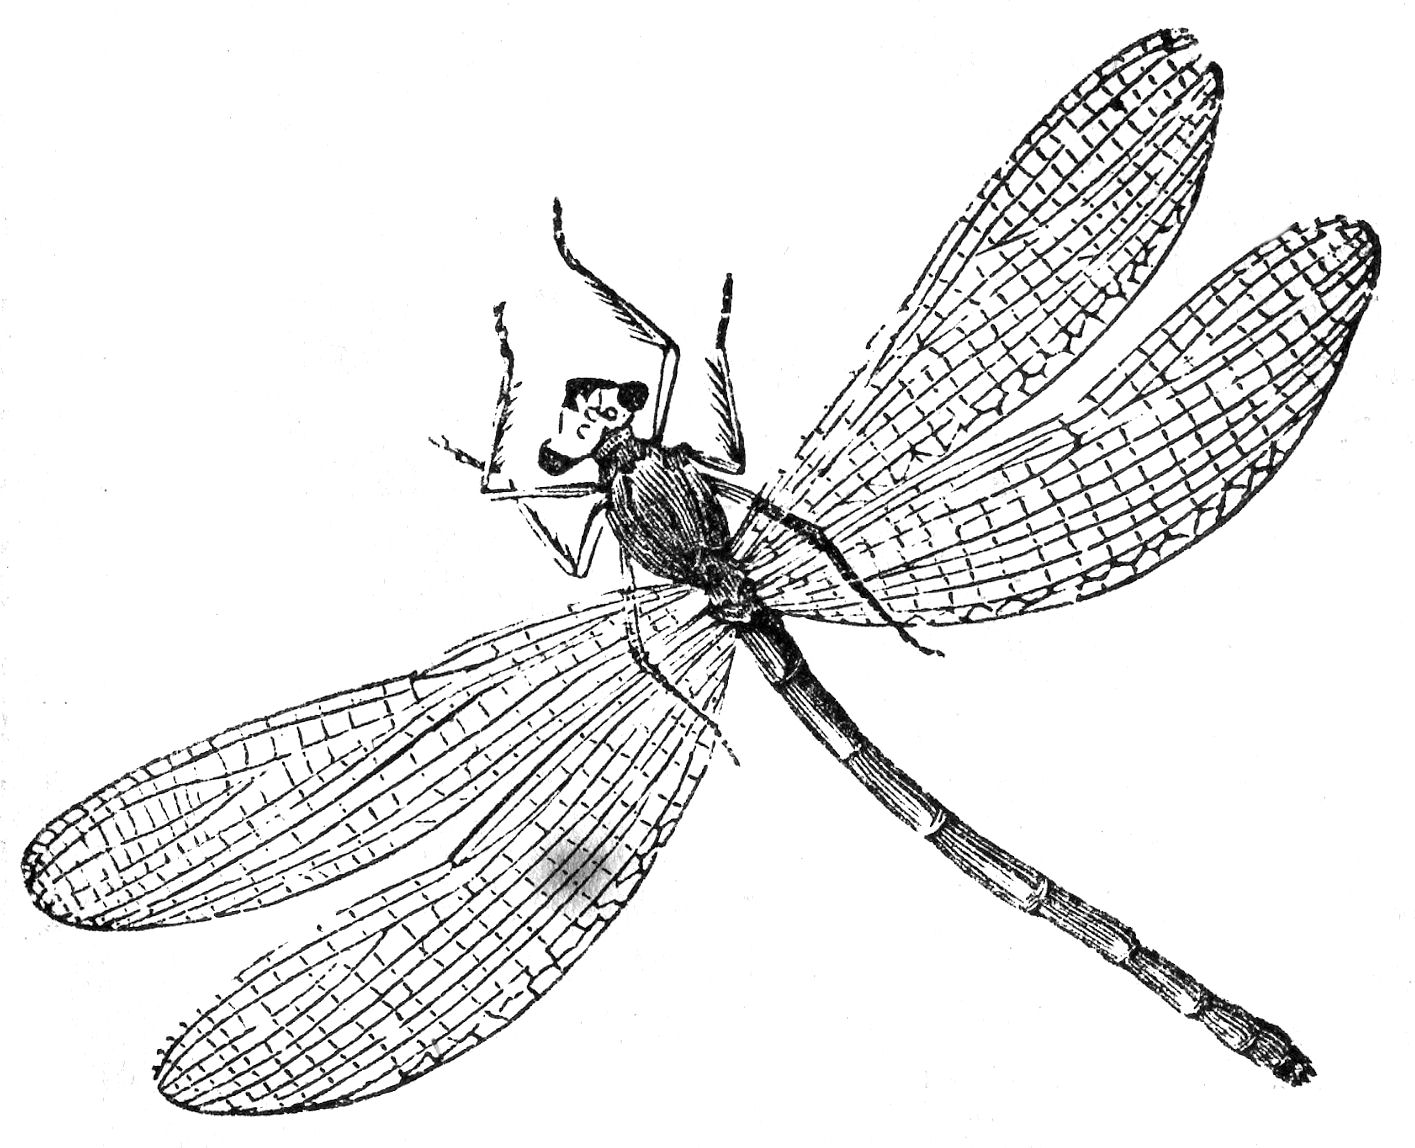 photo regarding Dragonfly Printable titled Totally free Printable Dragonfly Coloring Webpages For Small children